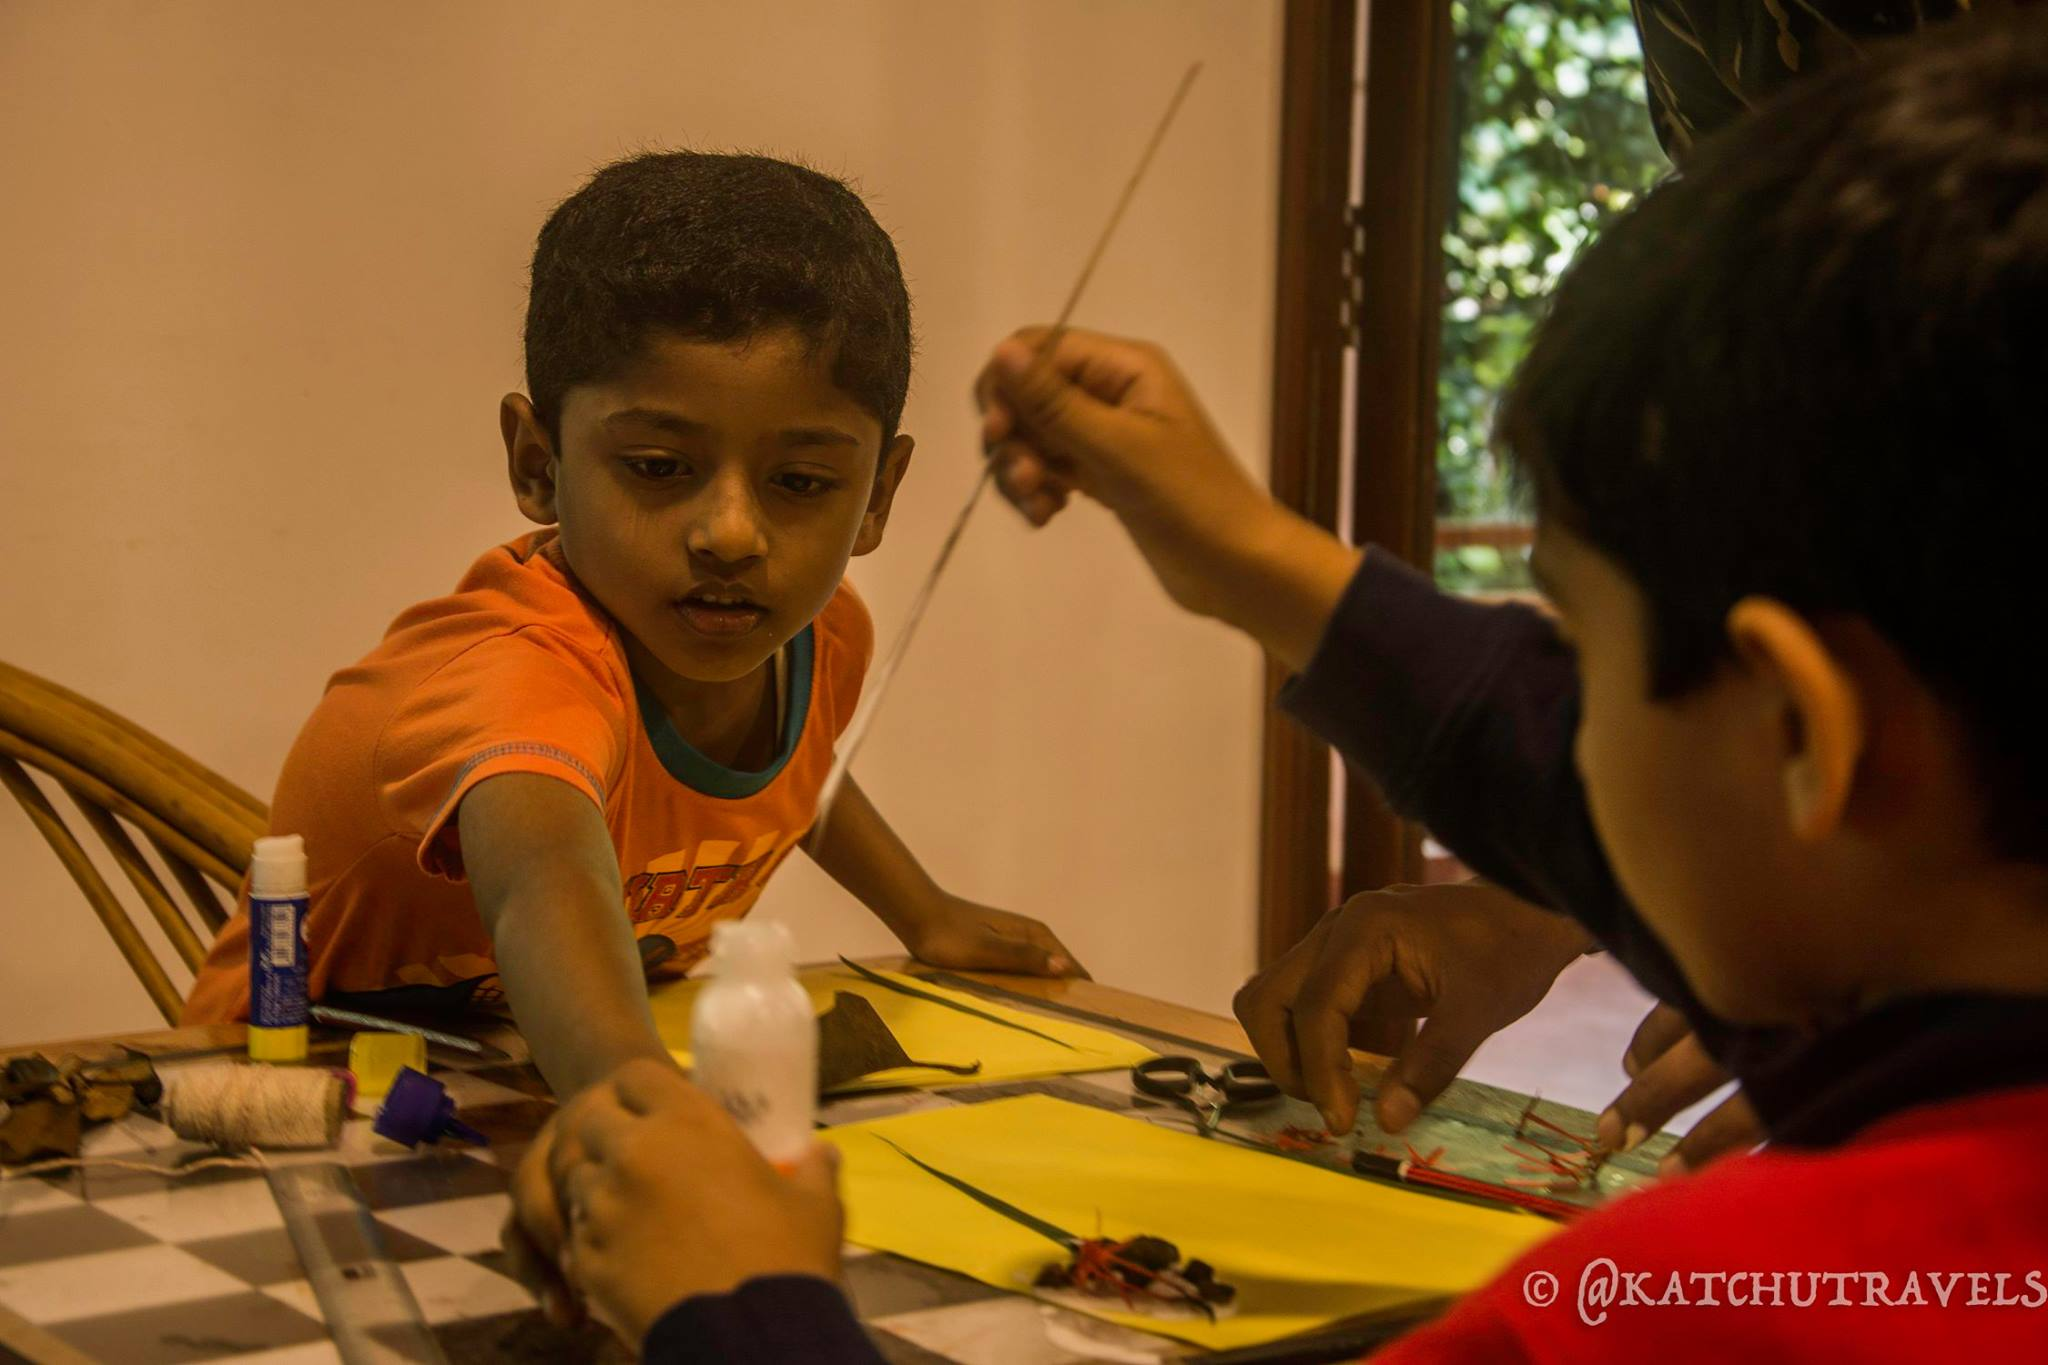 Nandu reaching out for the adhesive at the Children-Activity center at Kurumba Village Resort